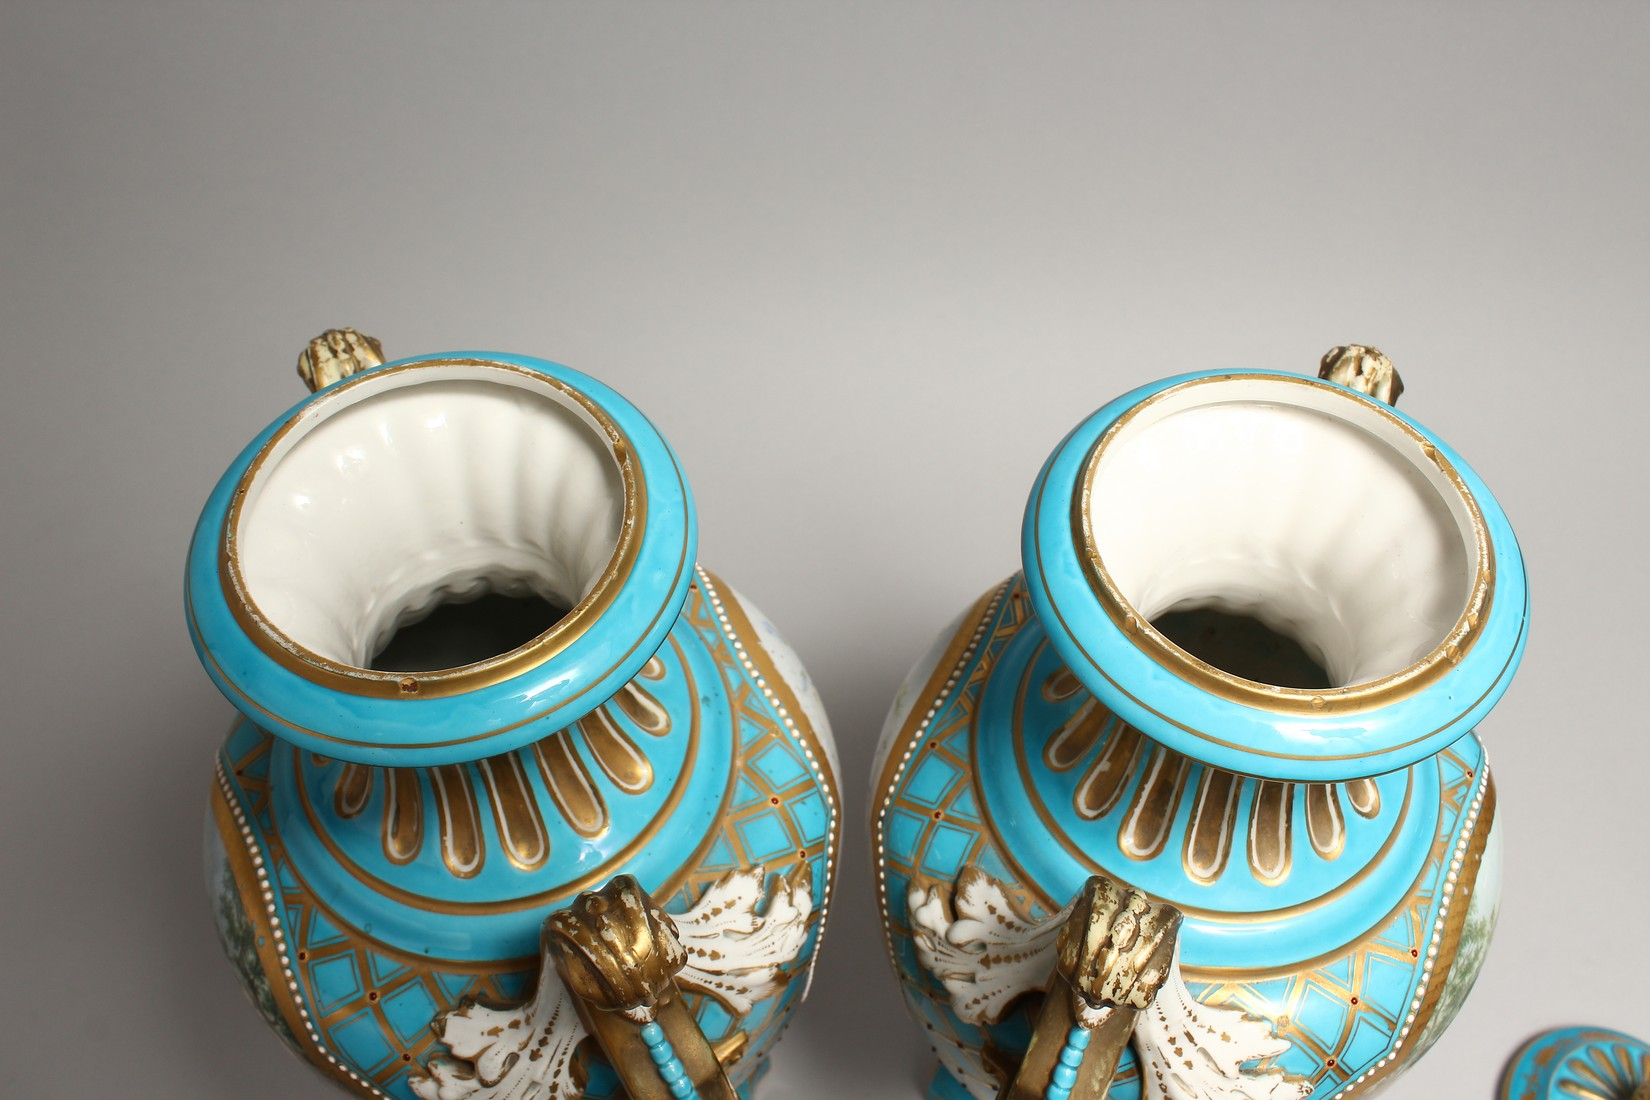 A SUPERB LARGE PAIR OF SEVRES TWO HANDLED URN SHAPED VASES AND COVERS, blue ground edged in gilt and - Image 9 of 10